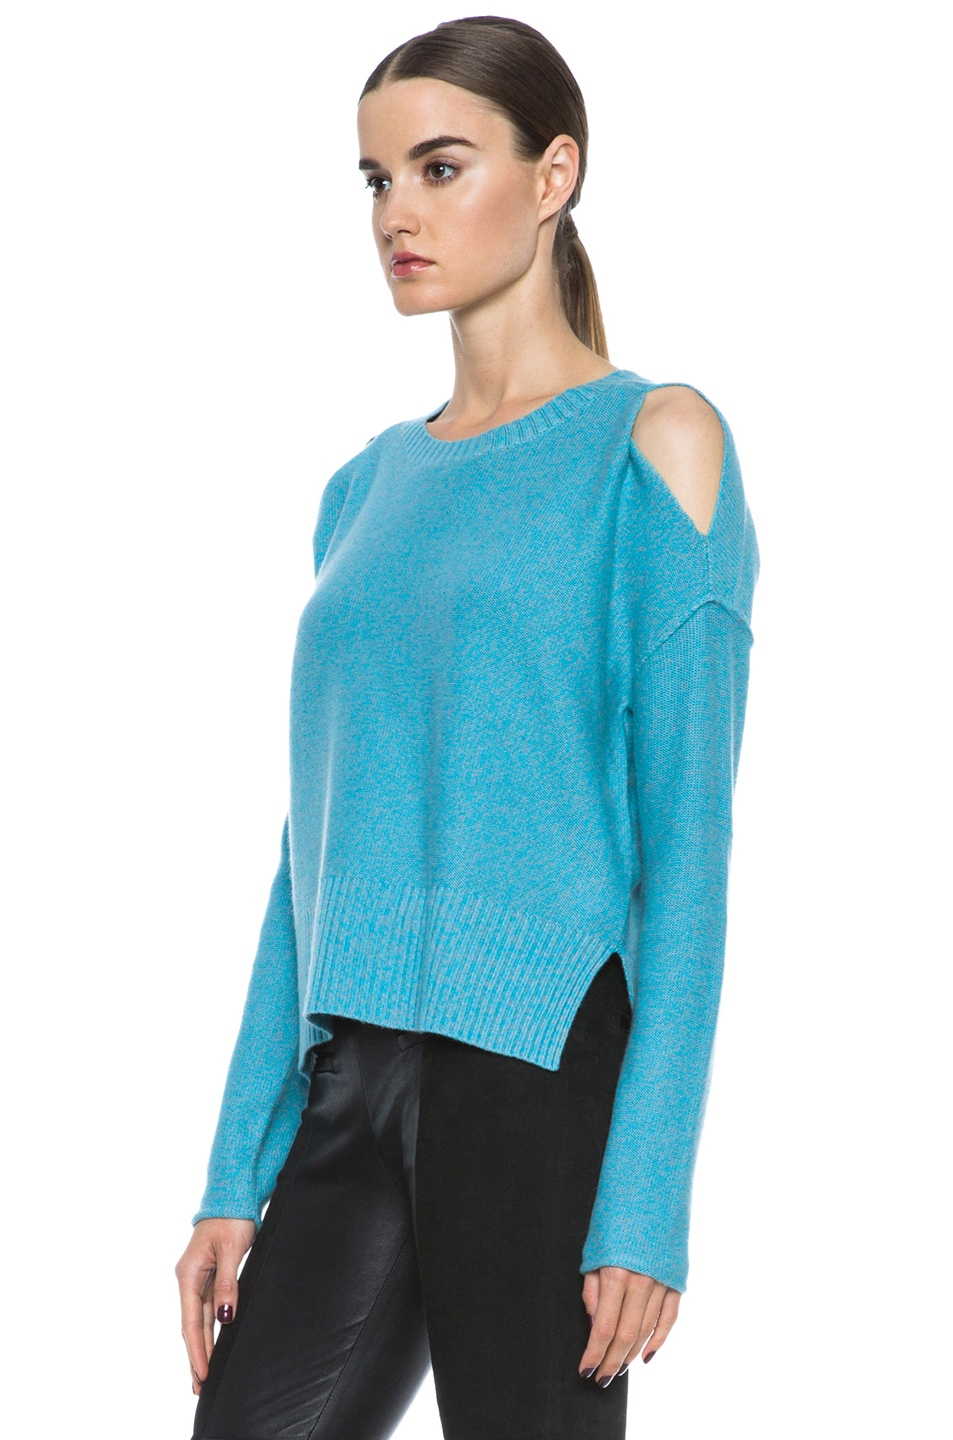 Image 2 of Tess Giberson Slouchy Split Hem Wool-Blend Sweater in Turqoise & Grey Melange